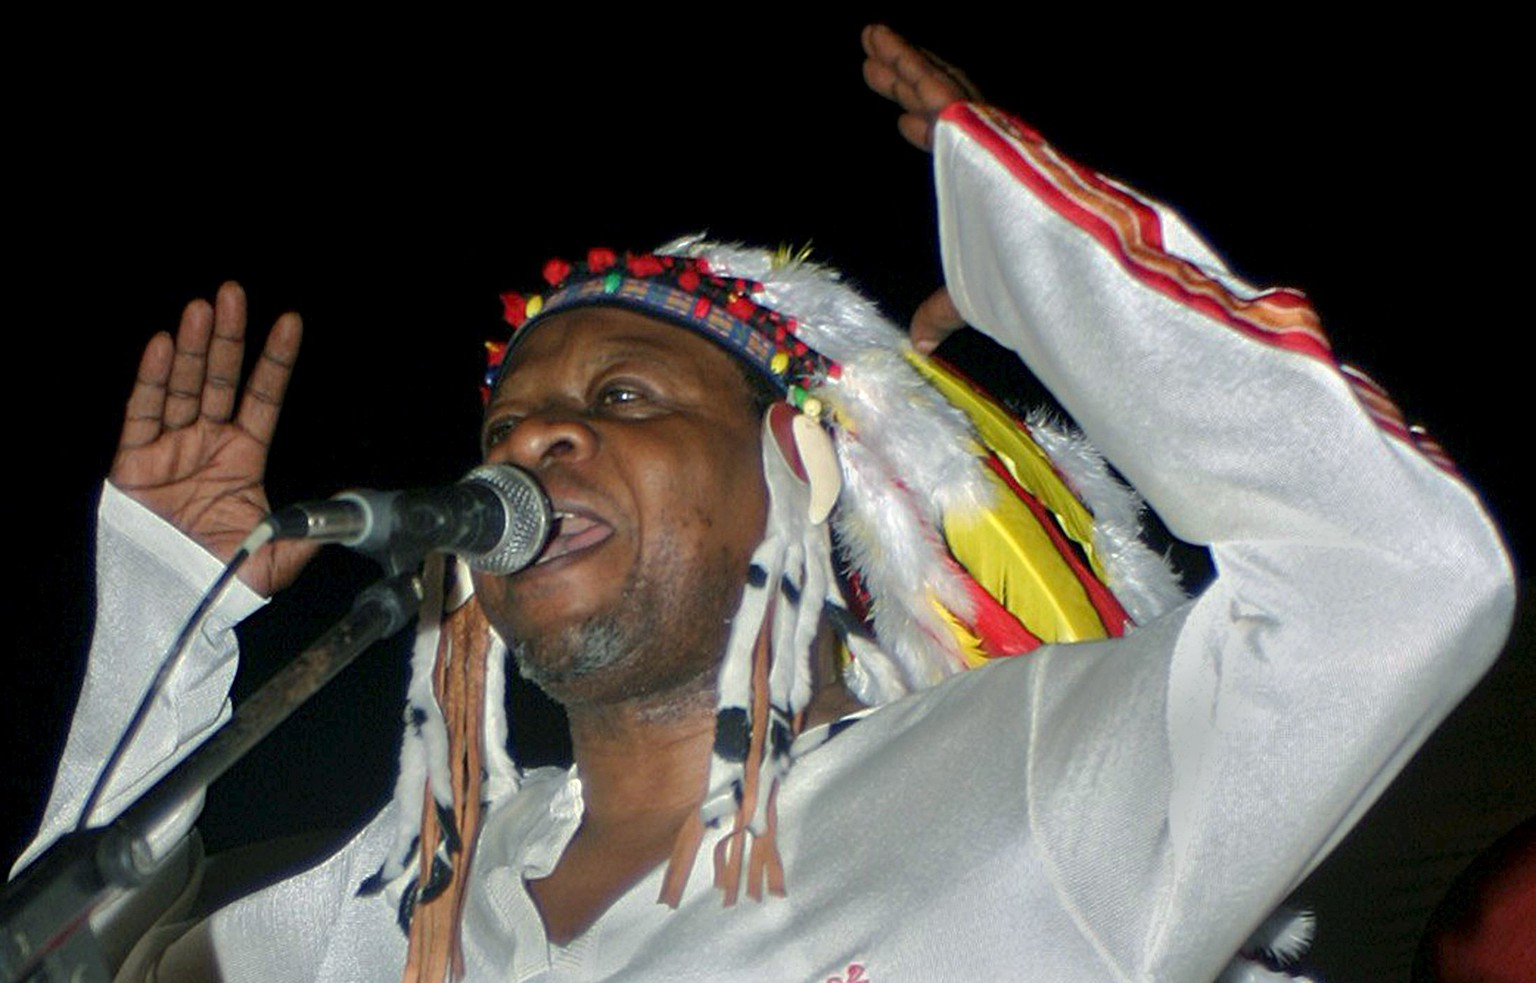 Congolese rumba music legend Papa Wemba gives his first concert in Kinshasa June 26, 2004.  REUTERS/David Lewis/File photo